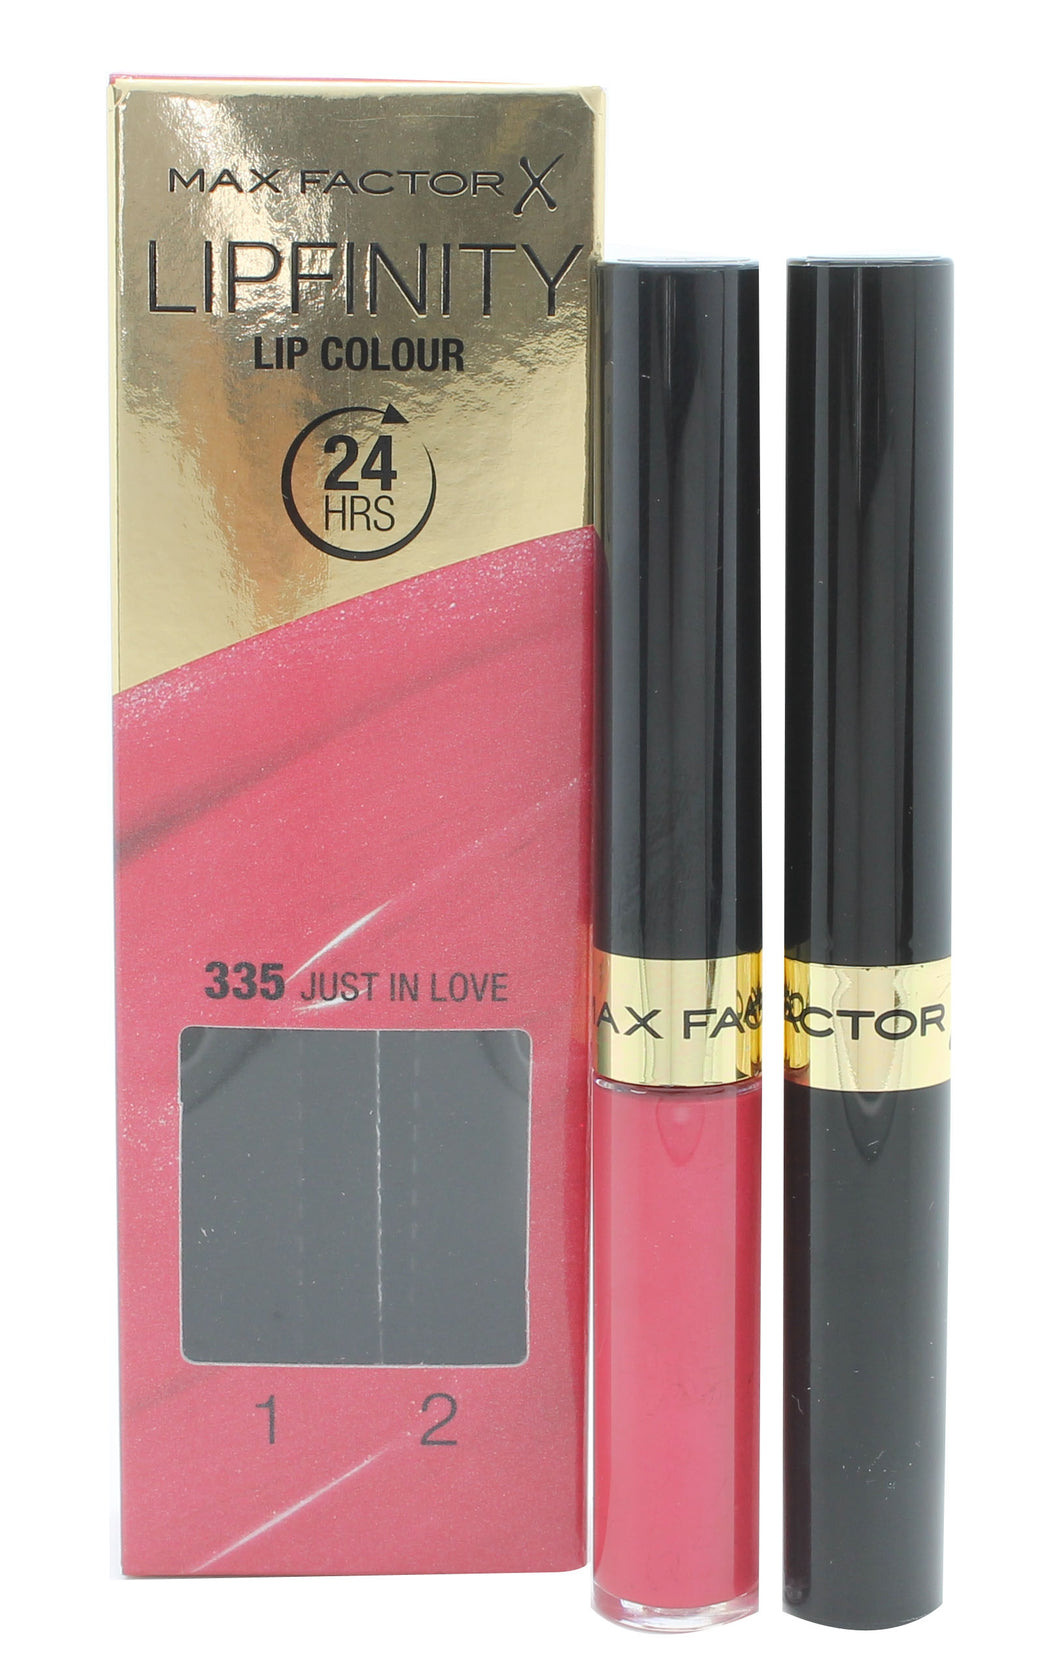 Max Factor Lipfinity Lip Colour - 335 Just In Love